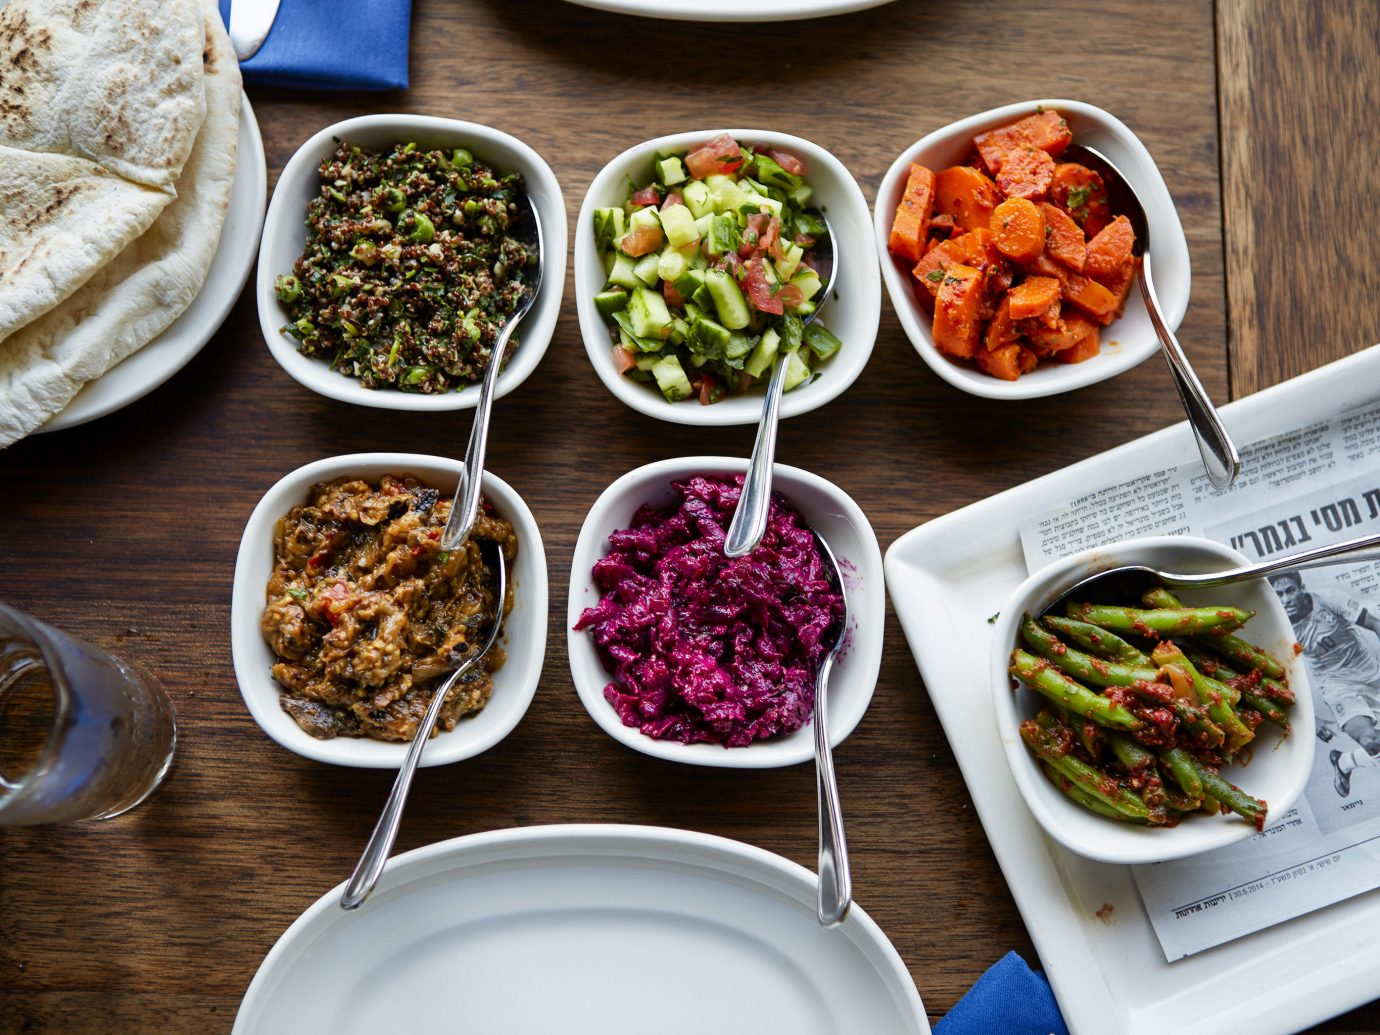 Food + Drink Phildelphia plate food table dish meal cuisine vegetarian food appetizer meze container brunch different vegetable rice condiment lunch recipe breakfast side dish sliced meat several containing arranged